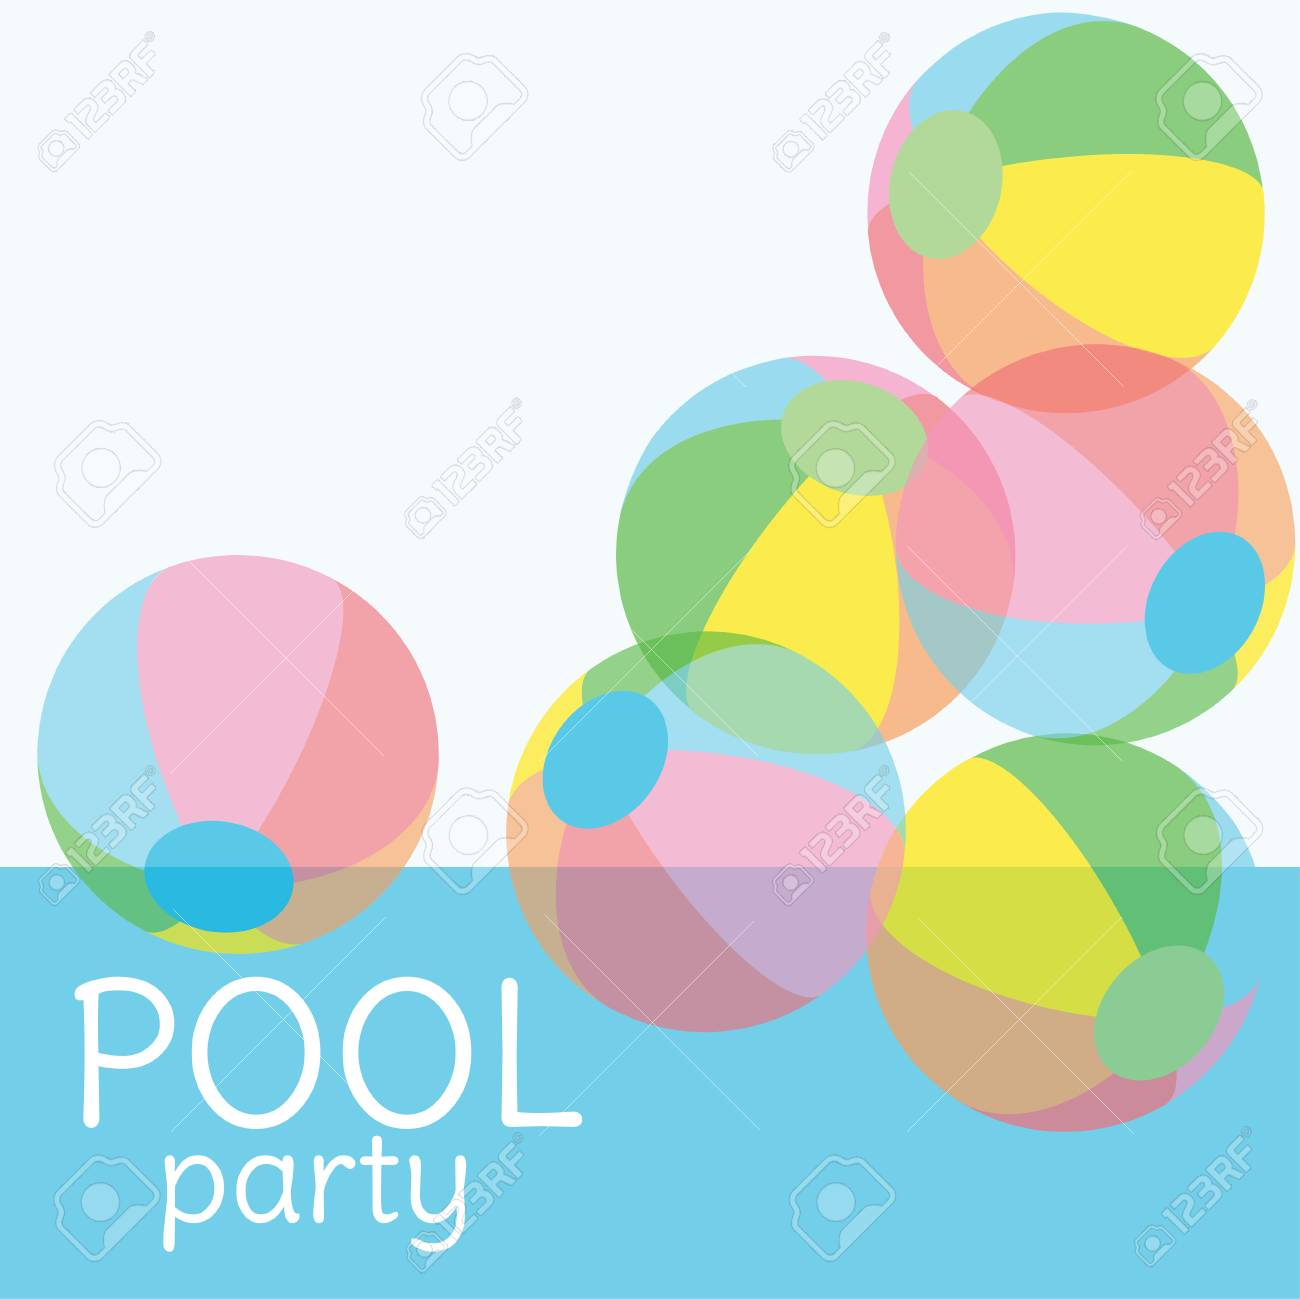 Pool party free vector real clipart and vector graphics pool party invitation vector background with copy space for text rh 123rf com stopboris Images